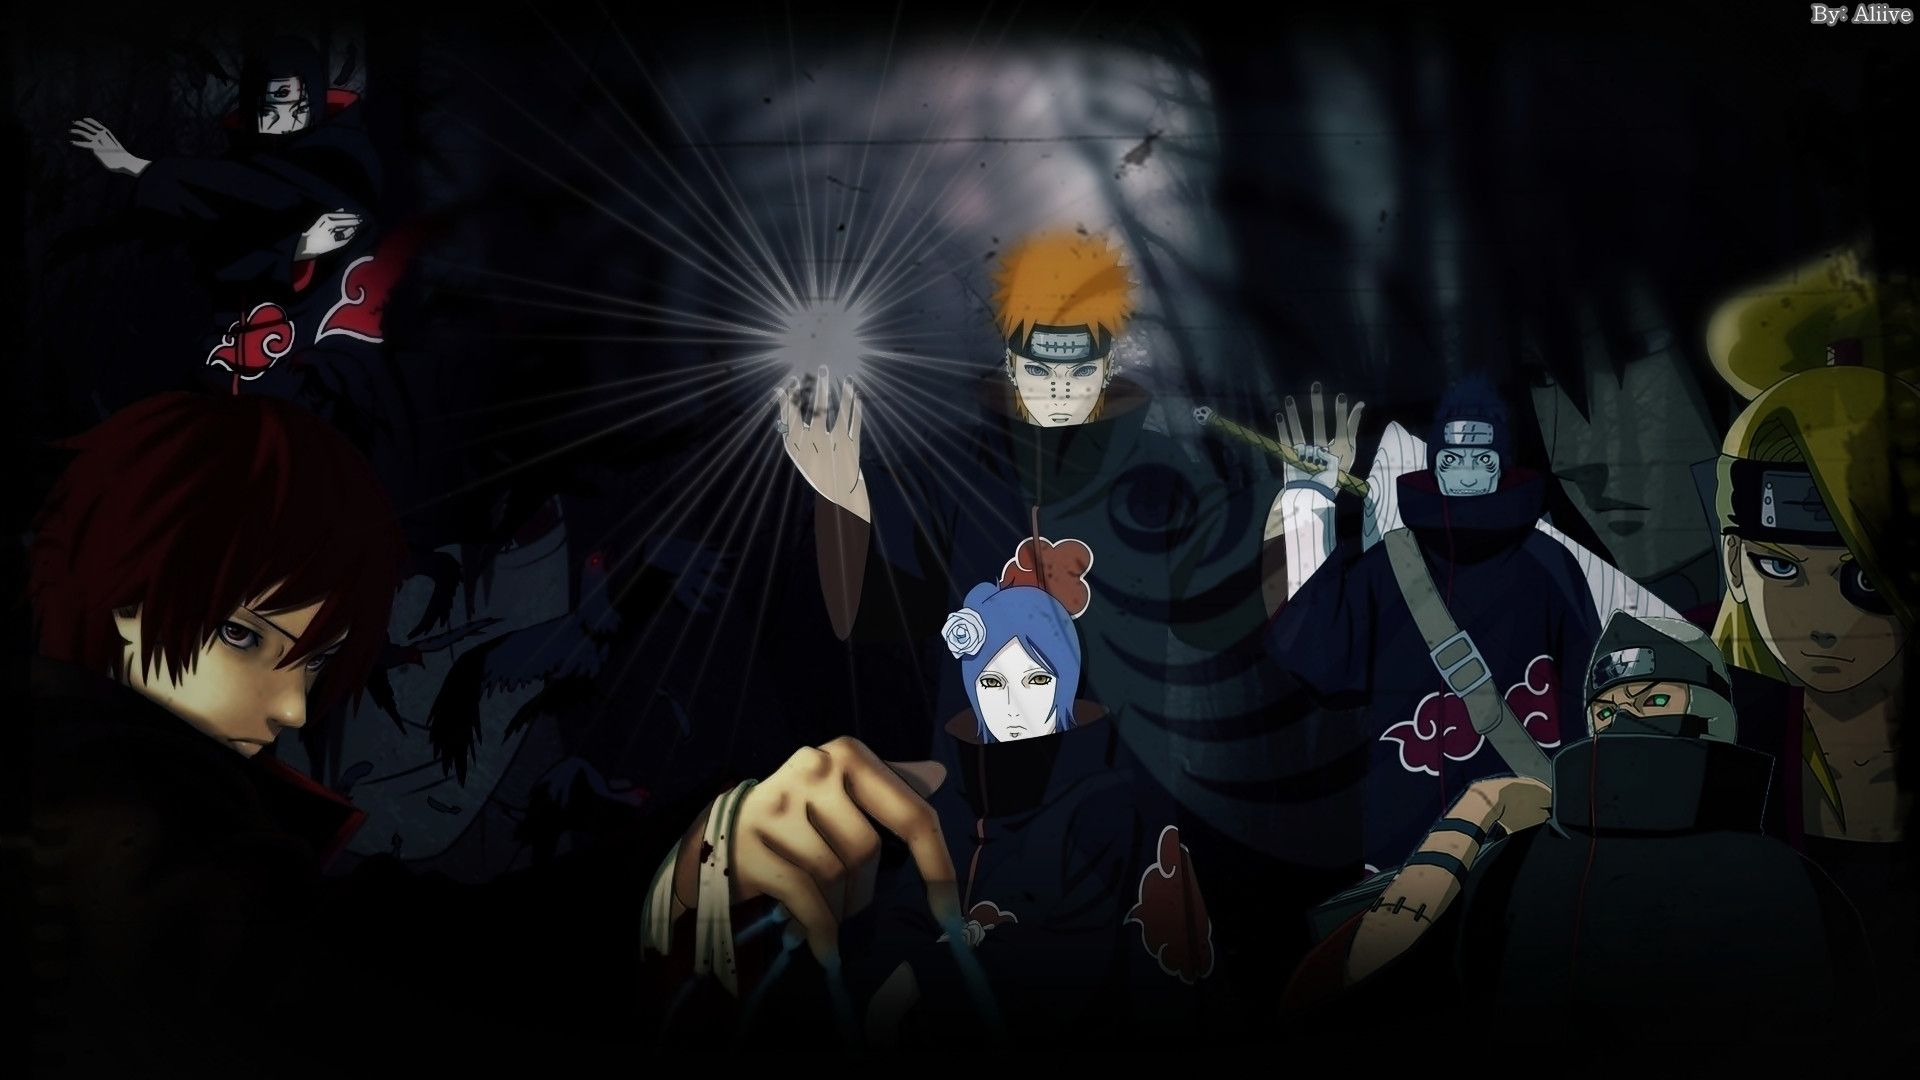 Akatsuki Wallpapers HD - Wallpaper Cave